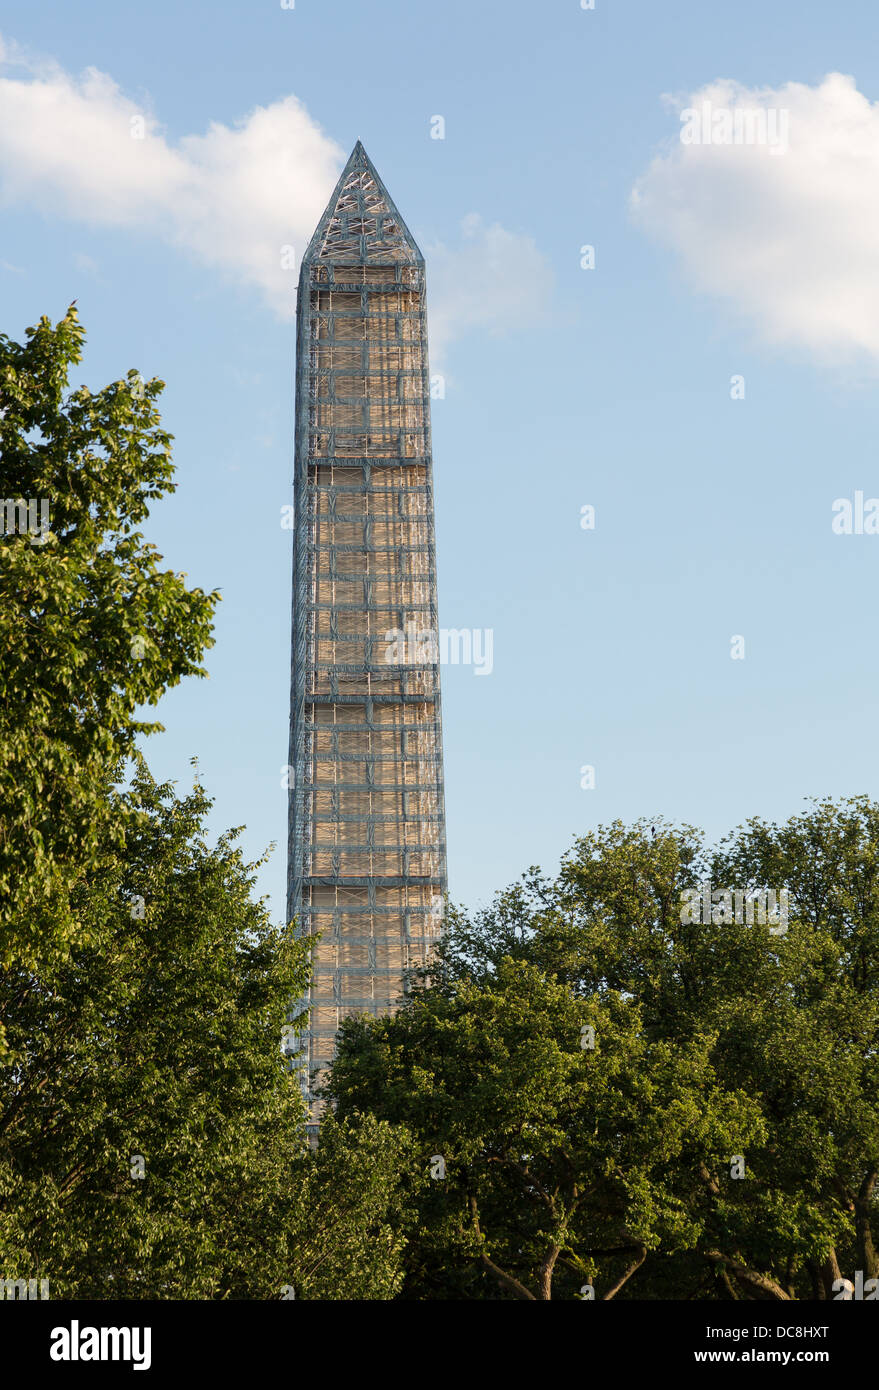 Washington Monument in scaffolding to repair damage caused by 2011 Earthquake, USA - Stock Image